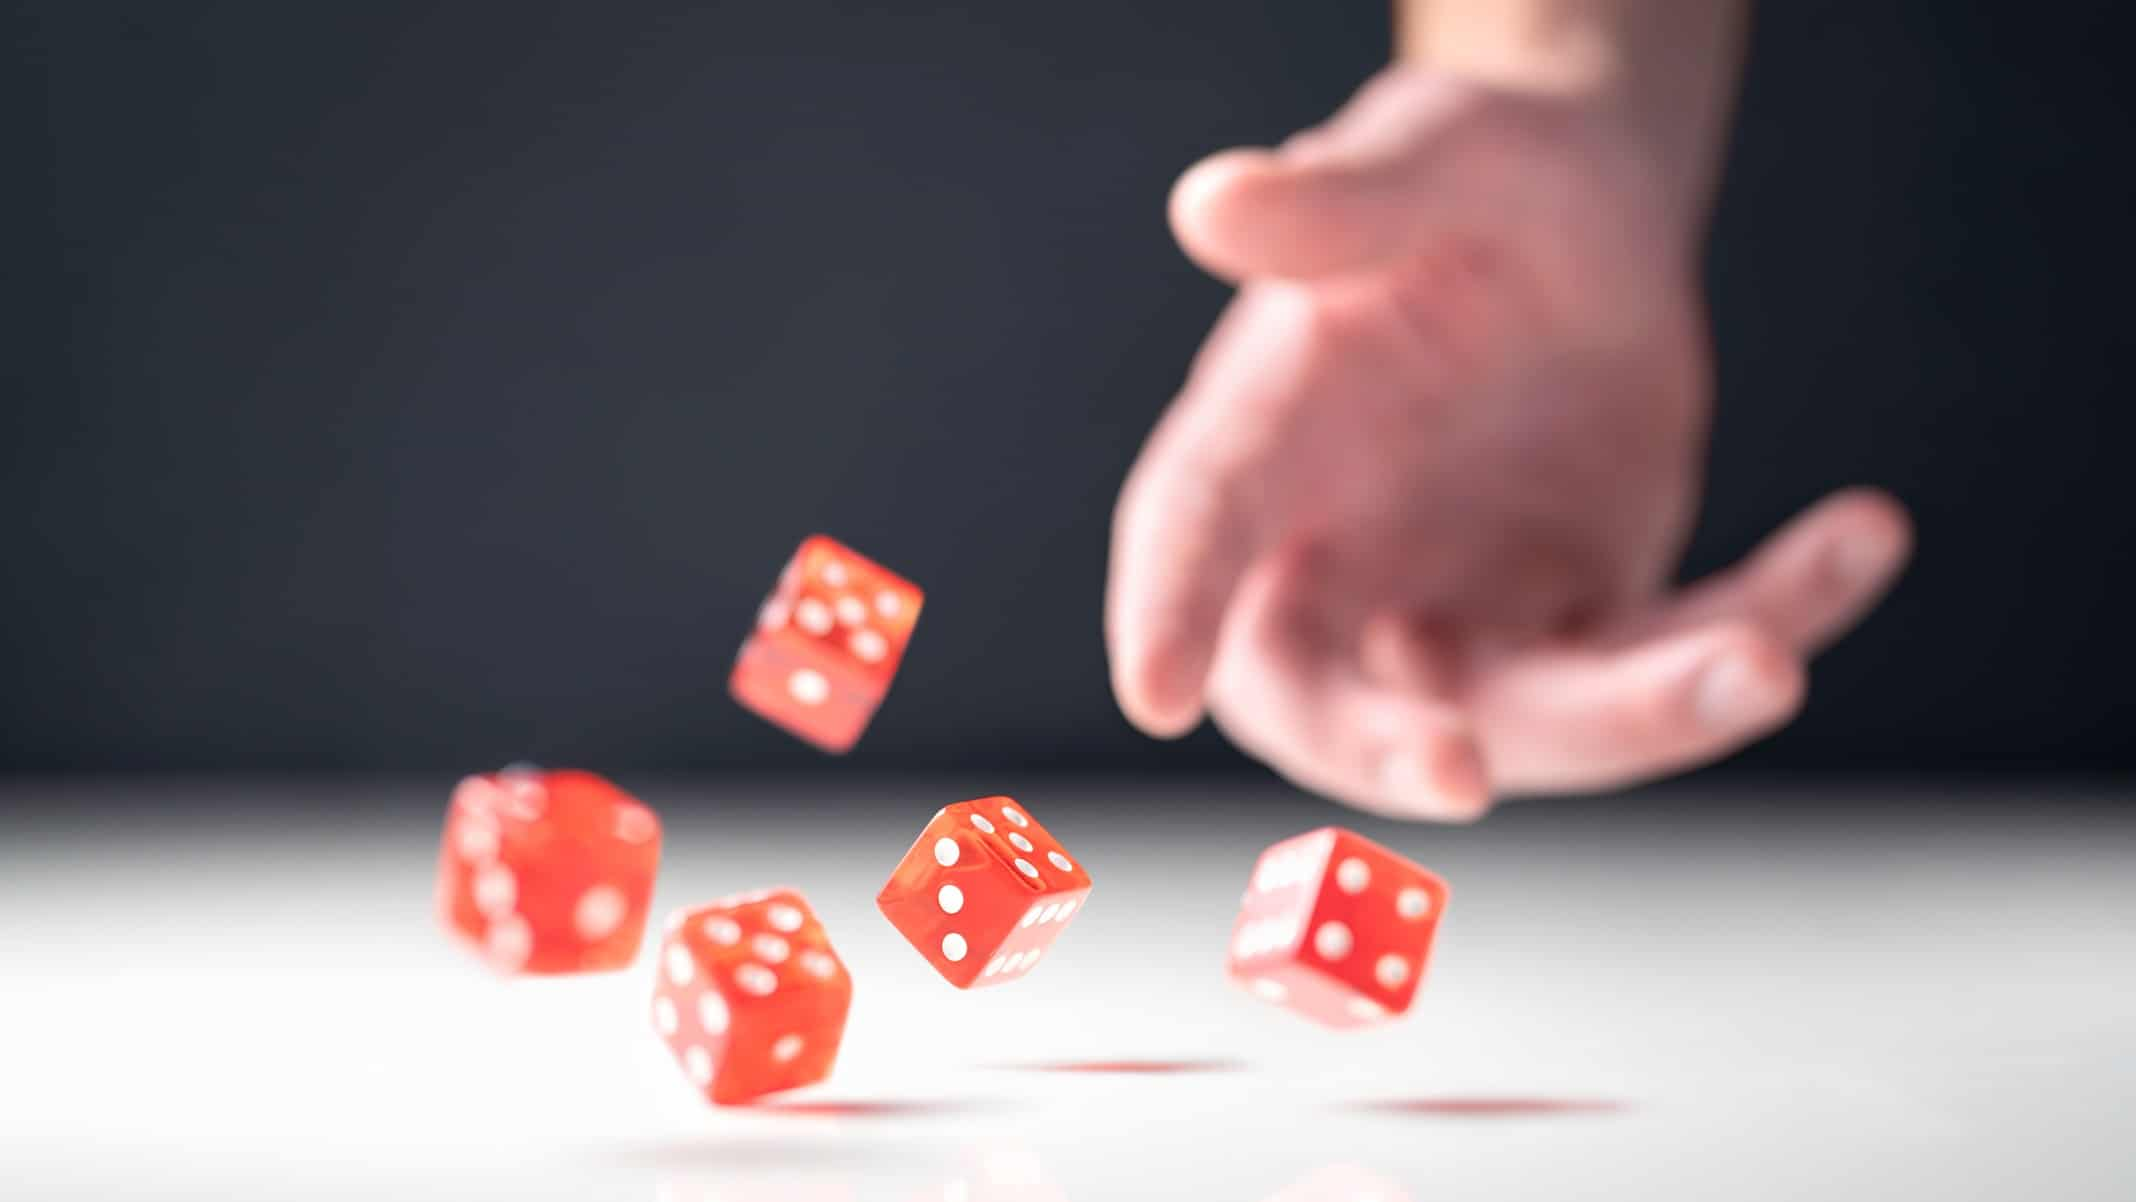 Gaming ASX share price represented by hand throwing four red dice